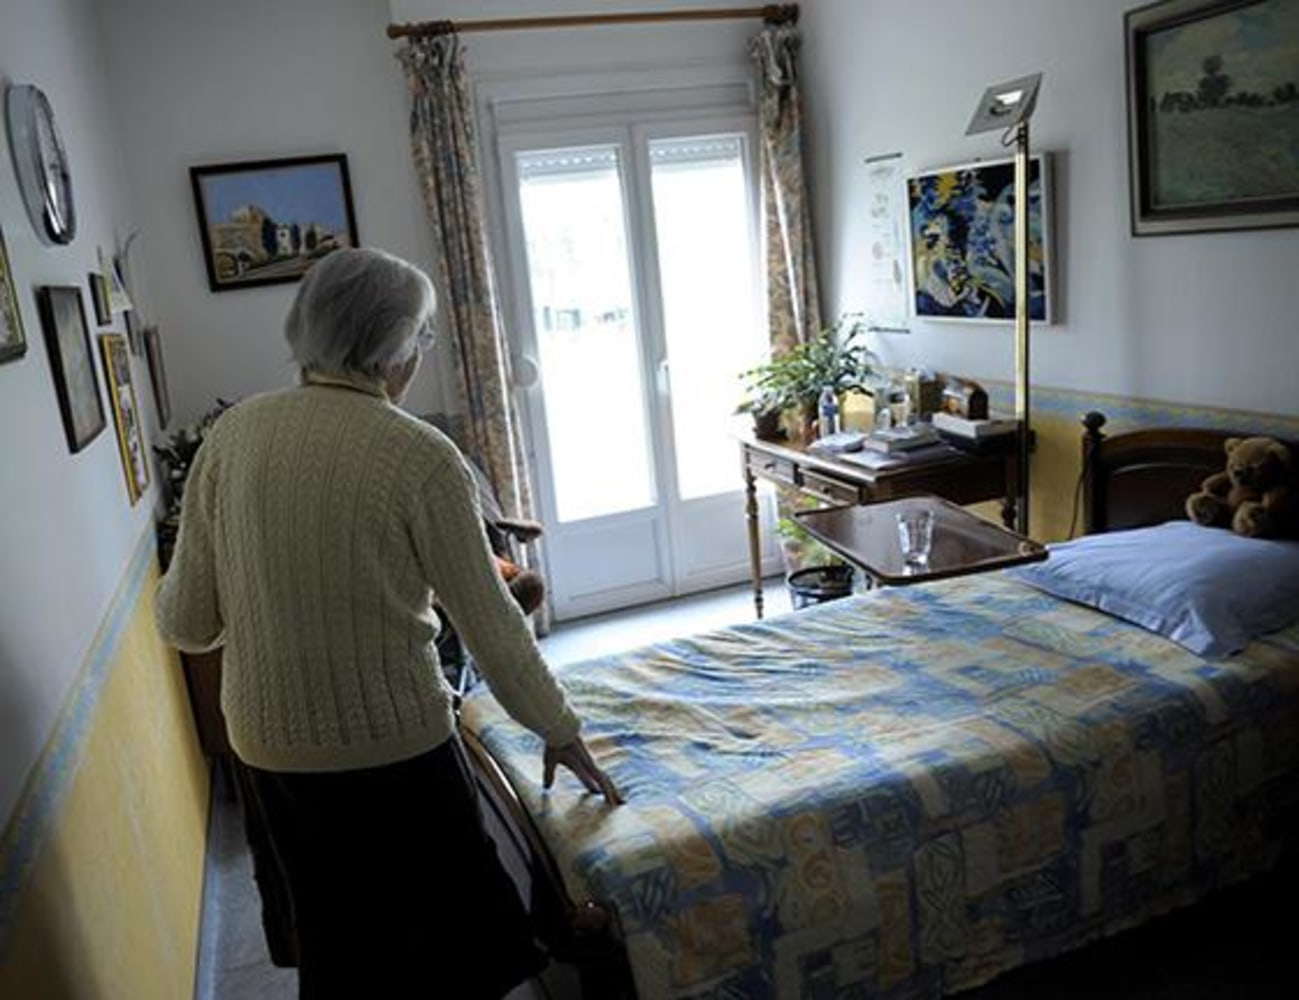 More Americans with Alzheimer's are dying at home